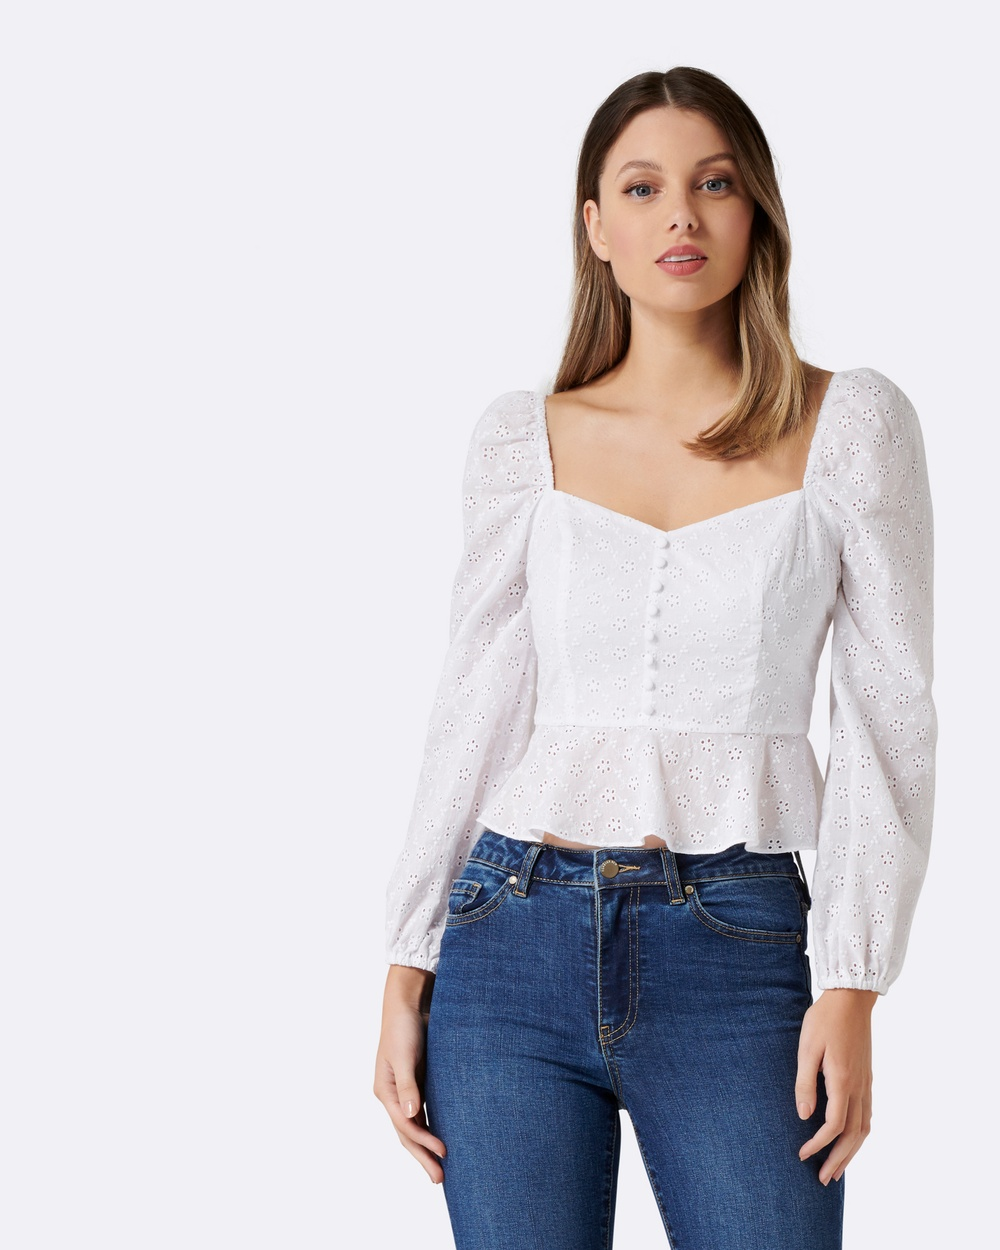 Forever New Celia Cotton Cutwork Blouse Tops Porcelain Celia Cotton Cutwork Blouse